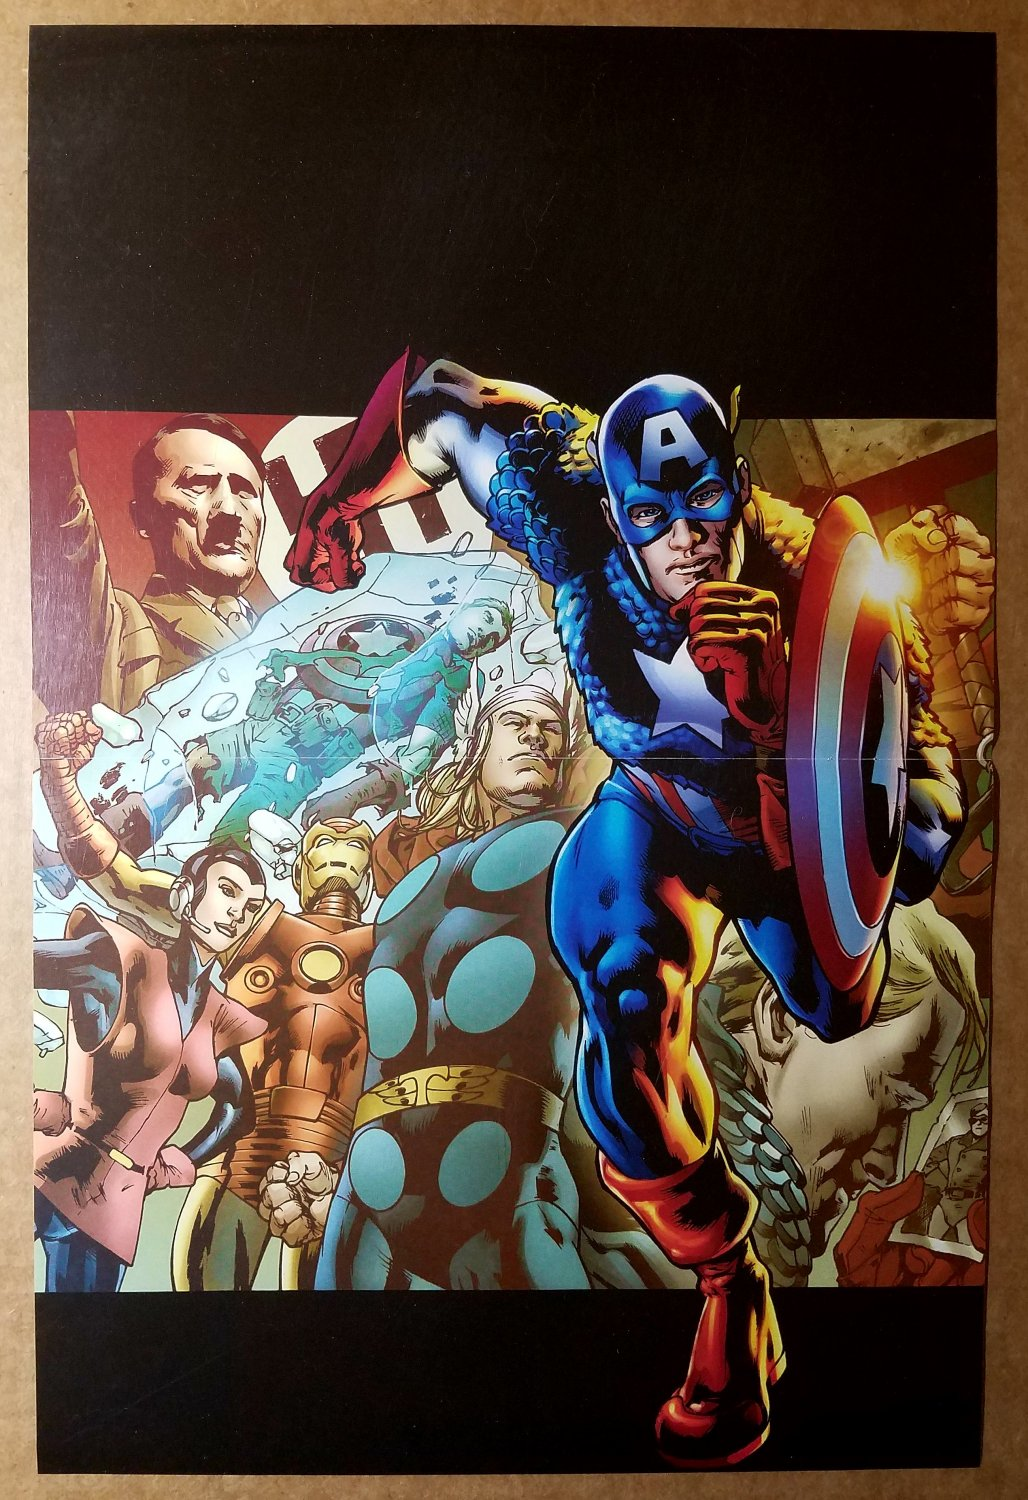 Captain America Thor Iron Man Avengers fight Hitler Marvel Comics Poster by Bryan Hitch